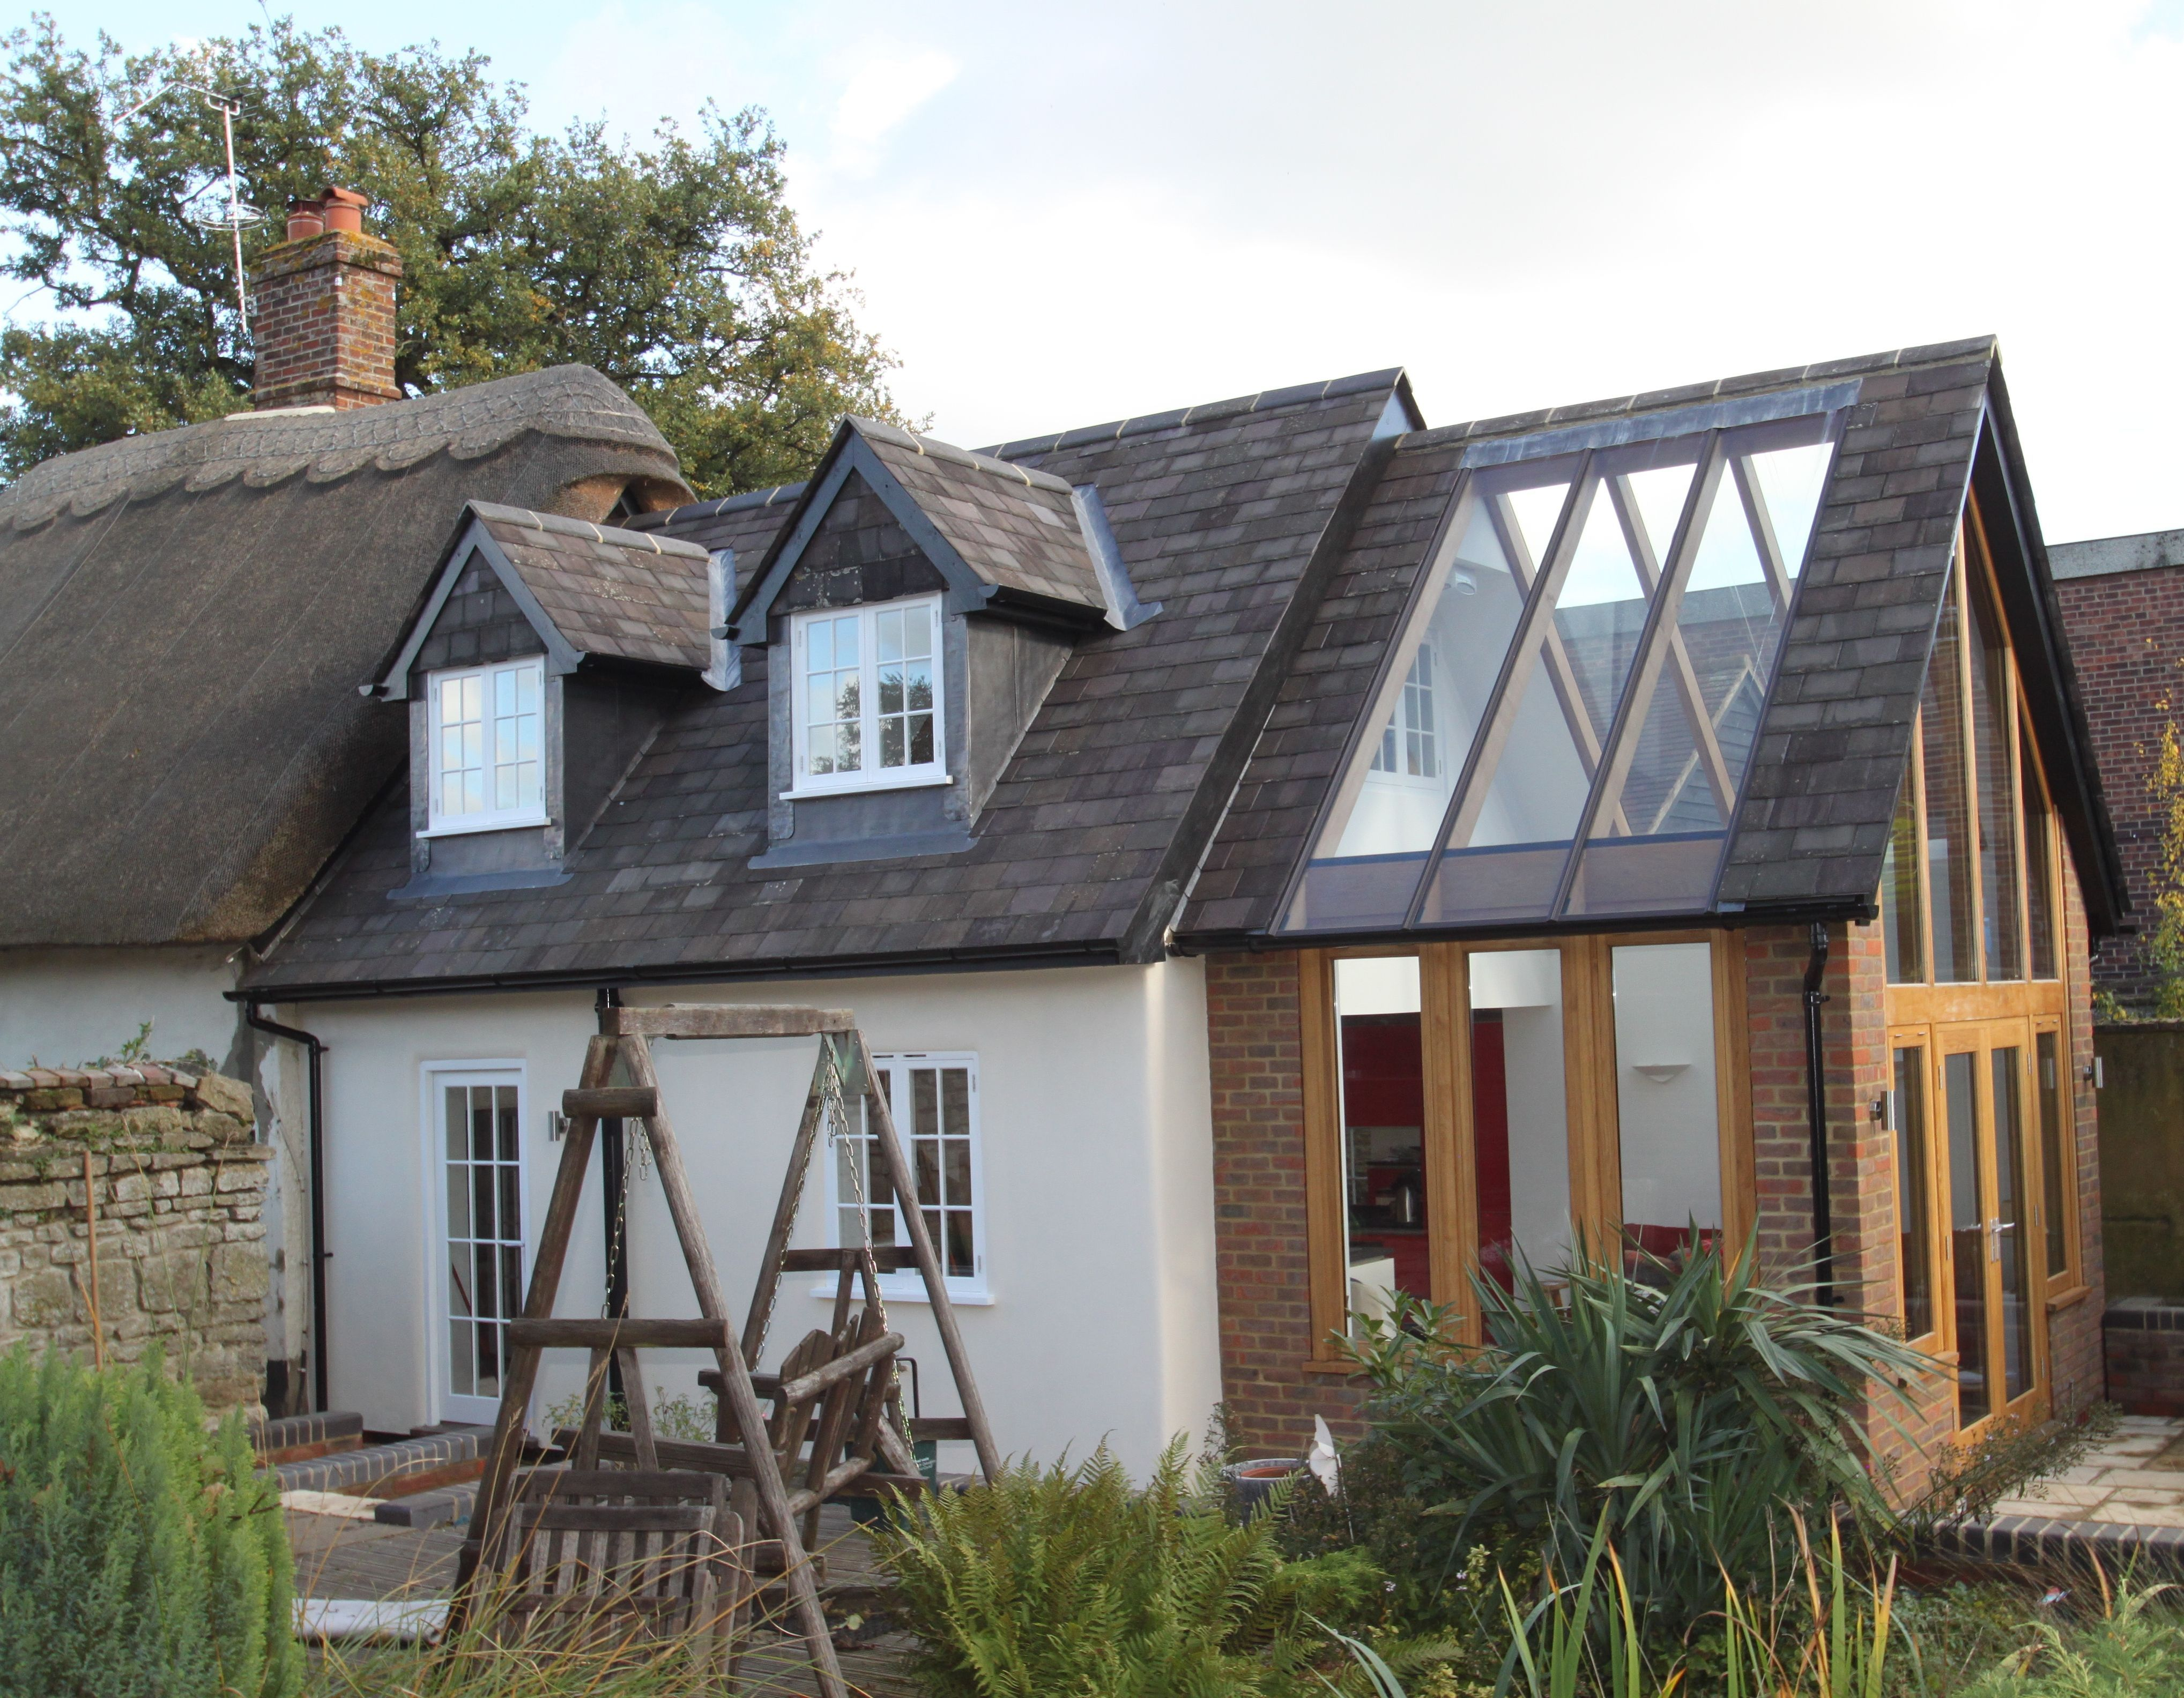 Https I Pinimg Com Originals 68 7a 41 687a41833c9588d55113f6bd037e9b8b Jpg Cottage Extension Thatched Cottage House Exterior